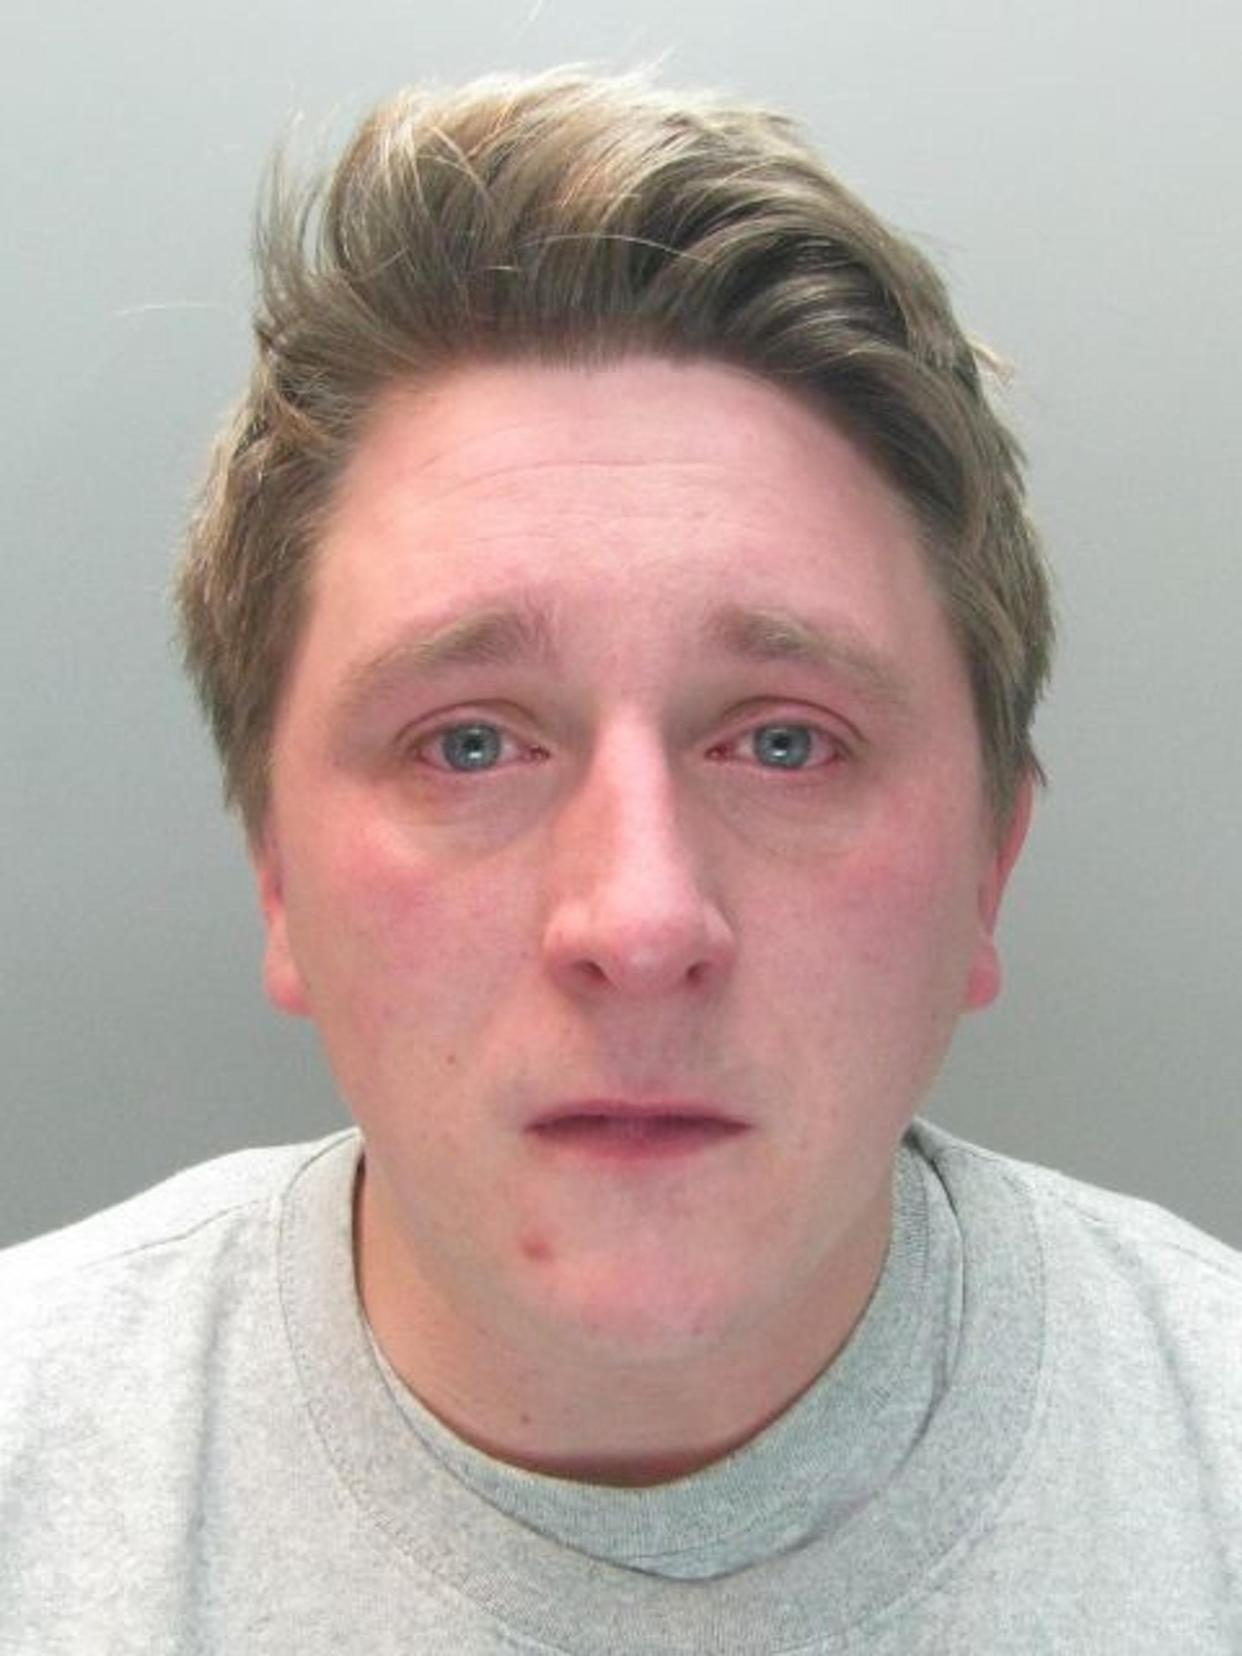 Sam Pybus drank 24 bottles of lager in the 10 hours before he choked his casual lover Sophie Moss to death in February. (Police Handout)